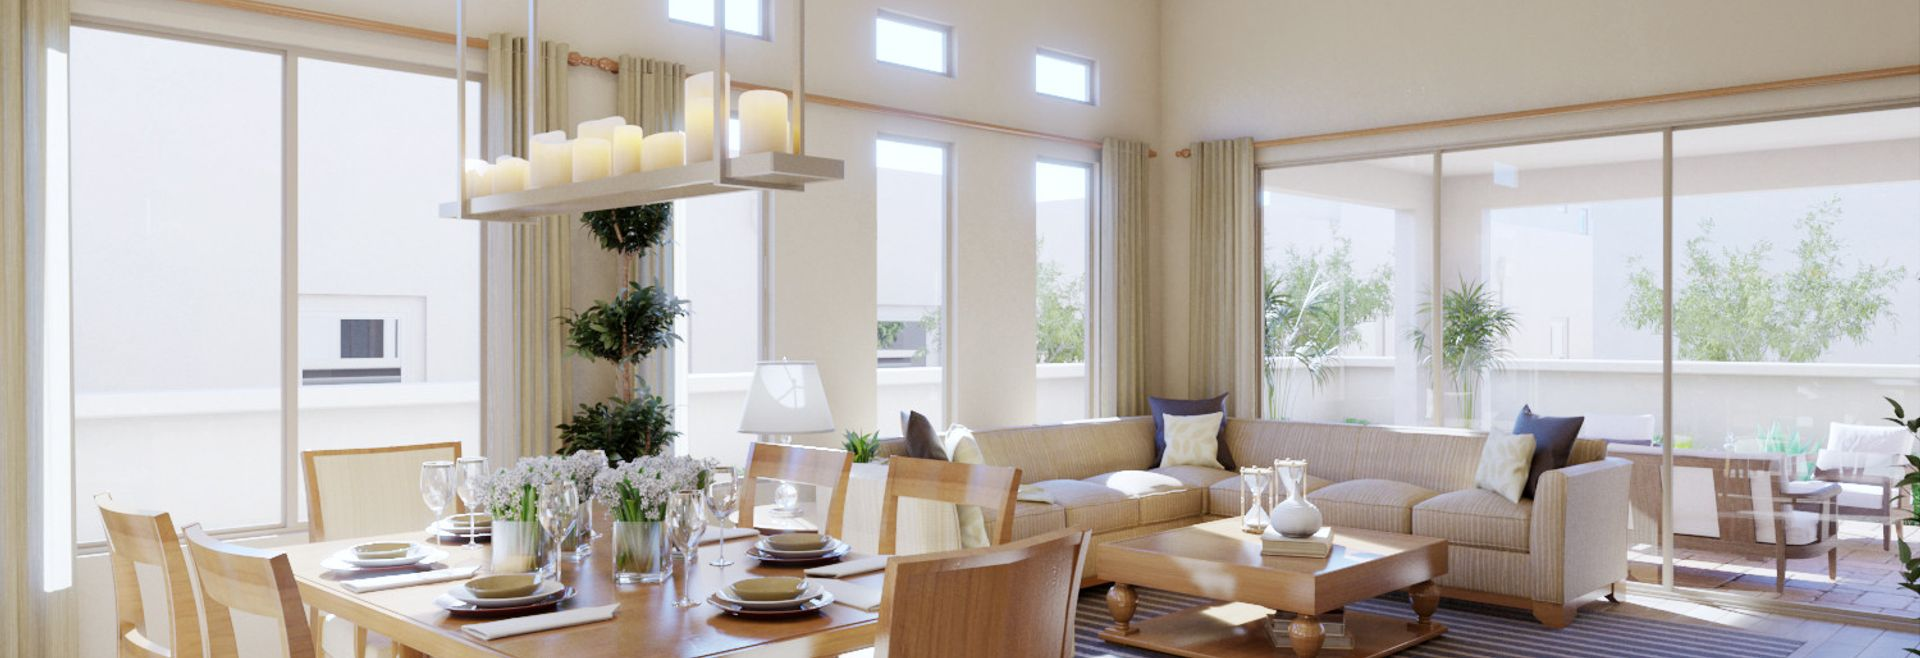 Trilogy Summerlin Explore Dining Room